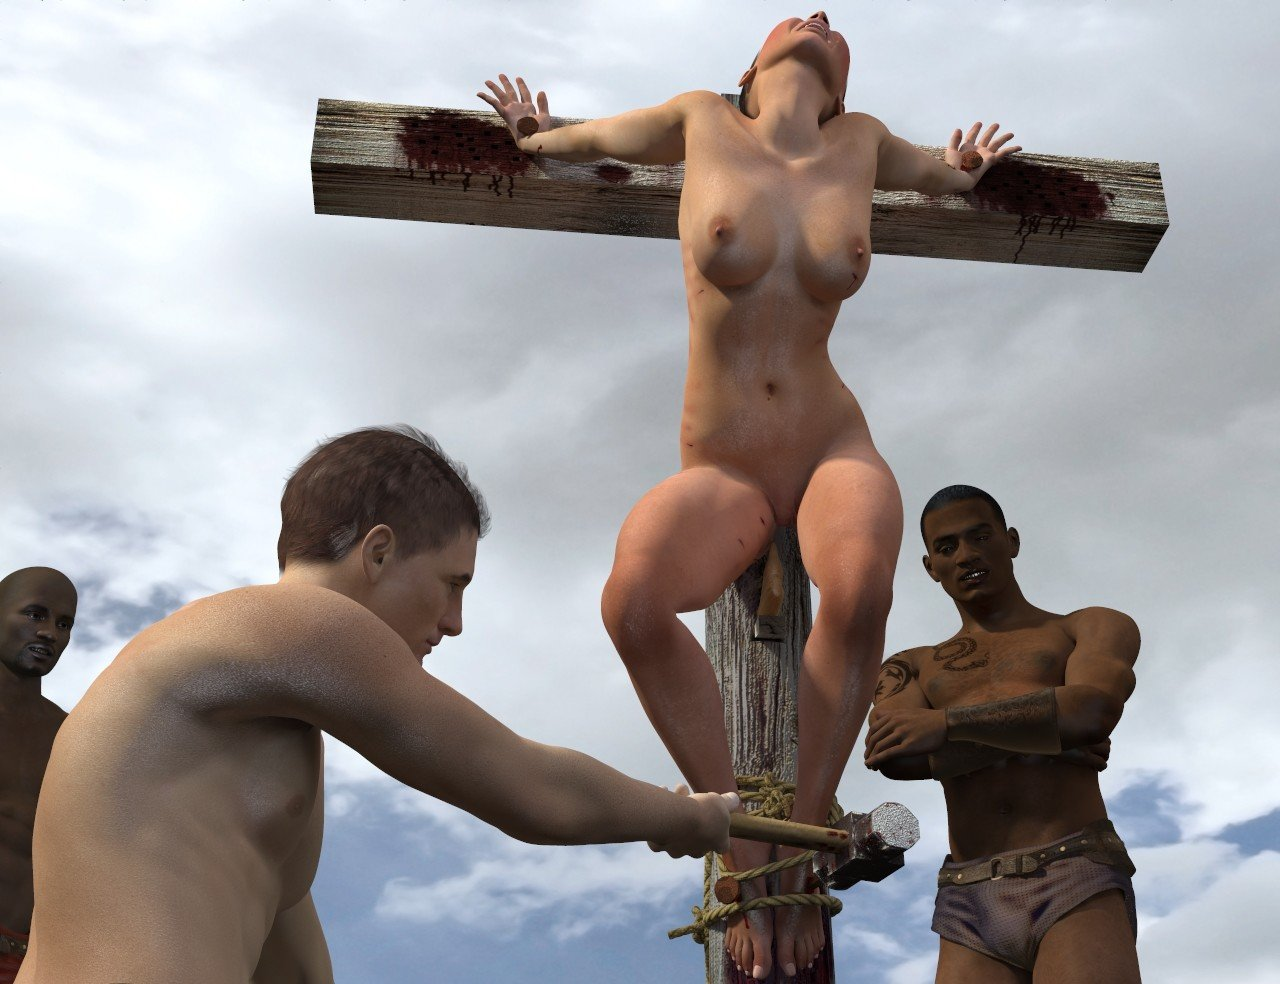 Crucifixion fetish